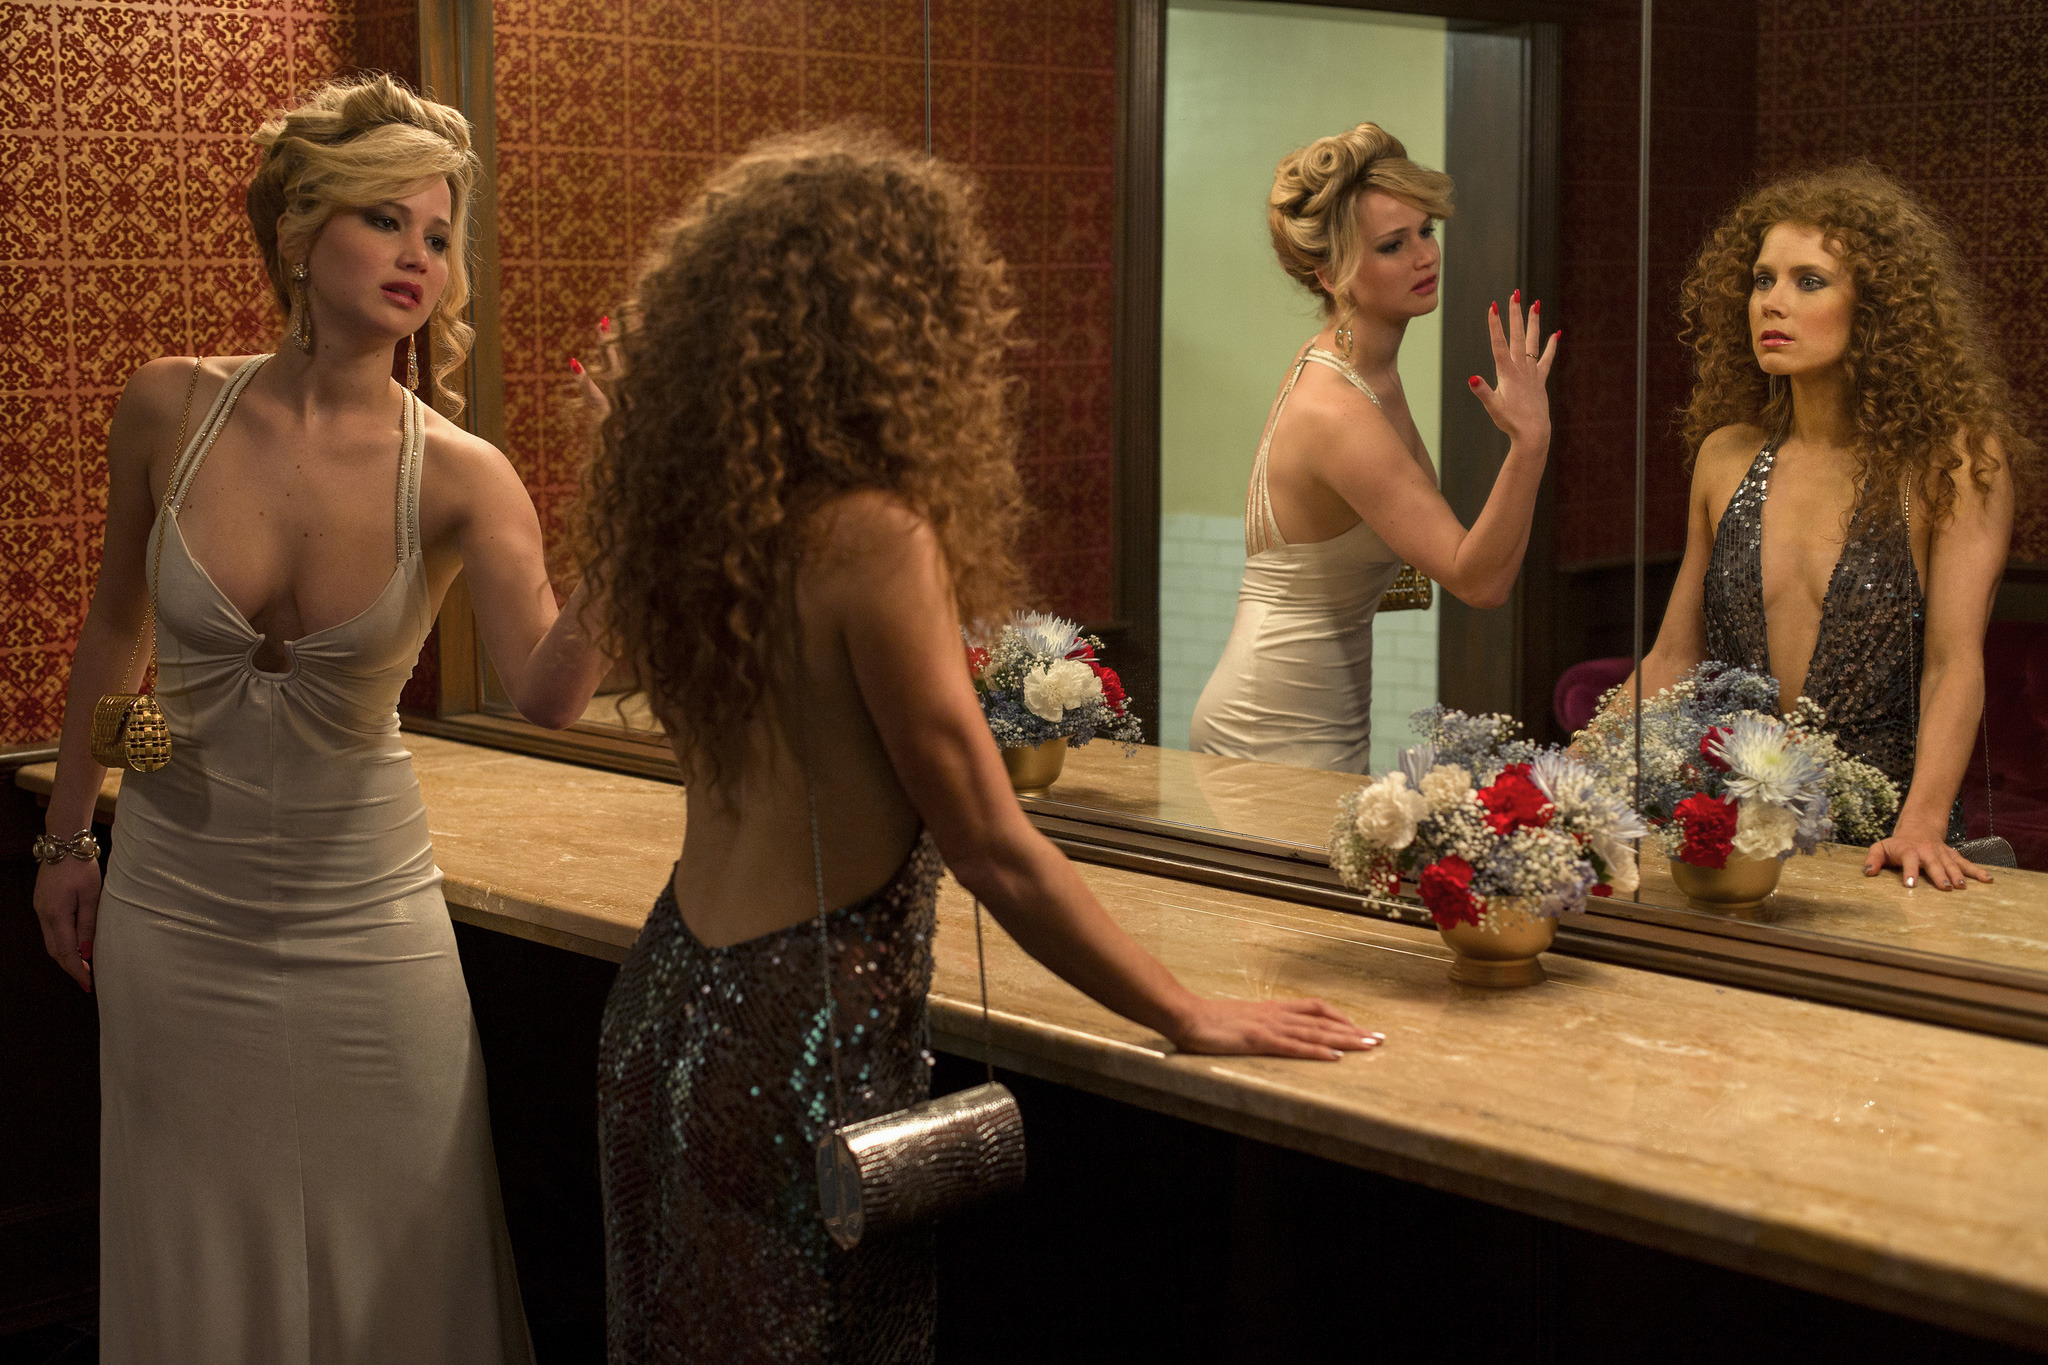 Rosalyn Rosenfeld (Jennifer Lawrence) & Sydney Prosser (Amy Adams) in the Grand Old AC Hotel powder room in Columbia Pictures' AMERICAN HUSTLE.  (Jennifer Lawrence dress: made for film, jewelry, shoes: vintage / Amy Adams dress: made for film, jewelry, sh